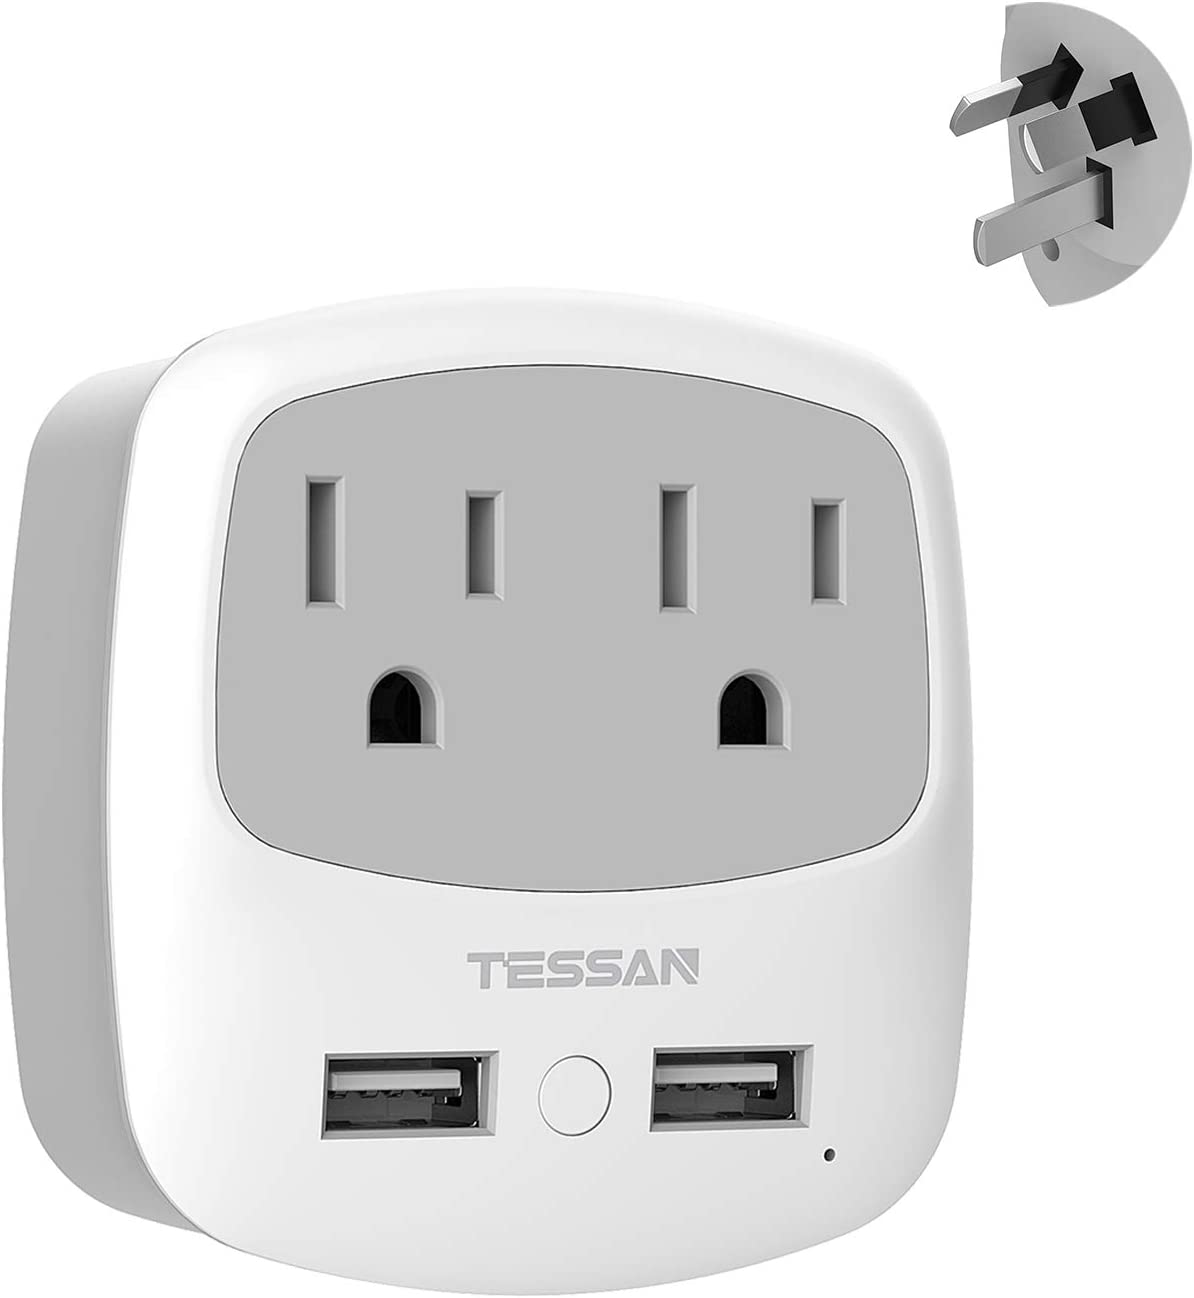 Use in China Argentina Fiji Solomon Type I AP-16 Fast Charging 2 USA Socket Compact /& Powerful Safe Dual USB /& USB-C Australia New Zealand Power Plug Adapter Travel with QC 3.0 /& PD by Ceptics